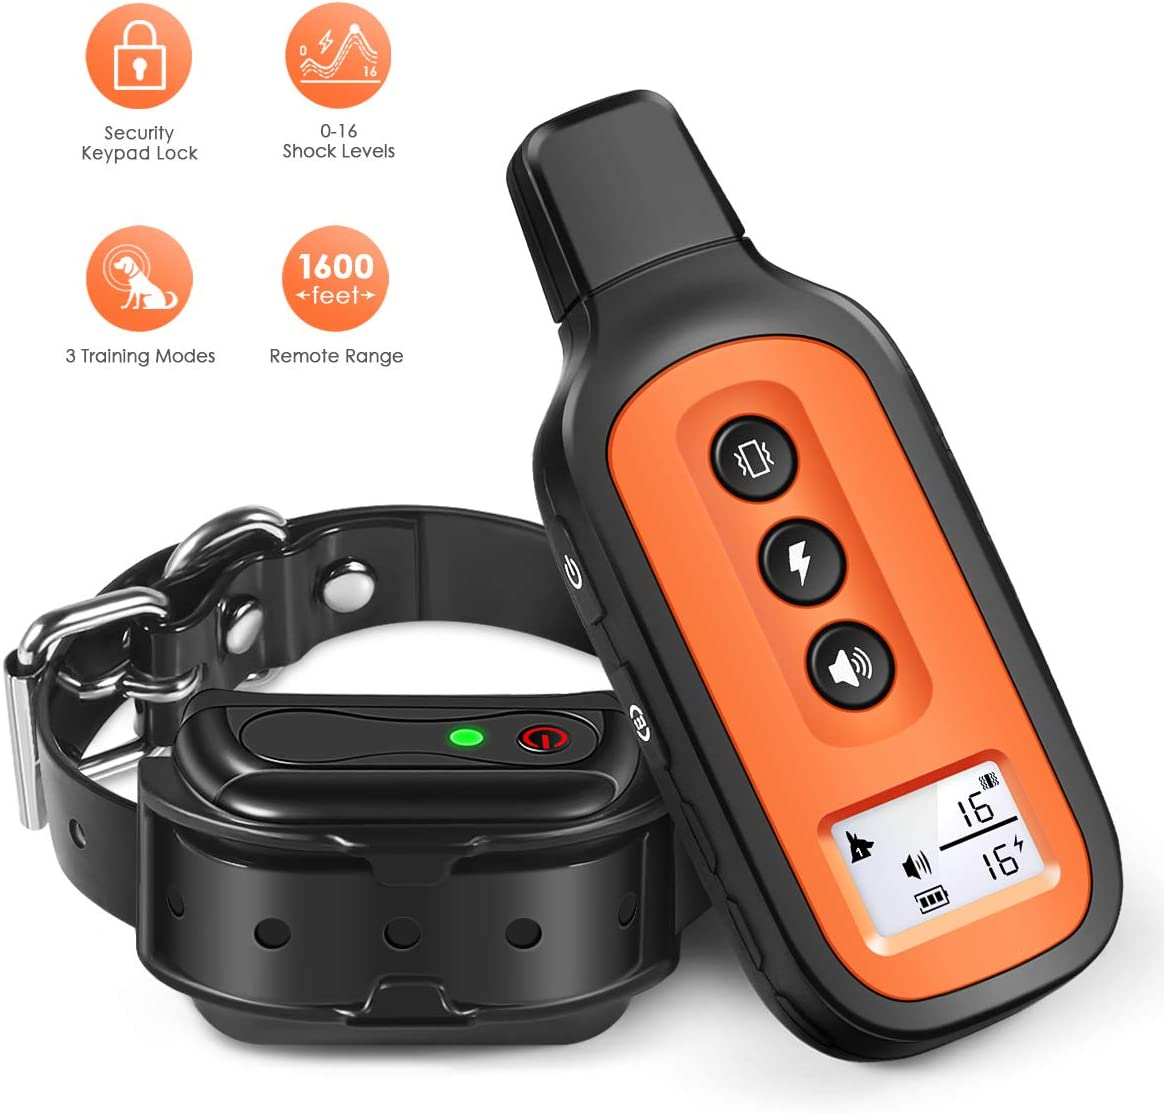 Dog Training Collar, Waterproof and Rechargeable Shock Collar for Dogs w 3 Training Modes, Up to 1600Ft Remote Range, Locking Keypad, Adjustable Collar Strap for All Breeds